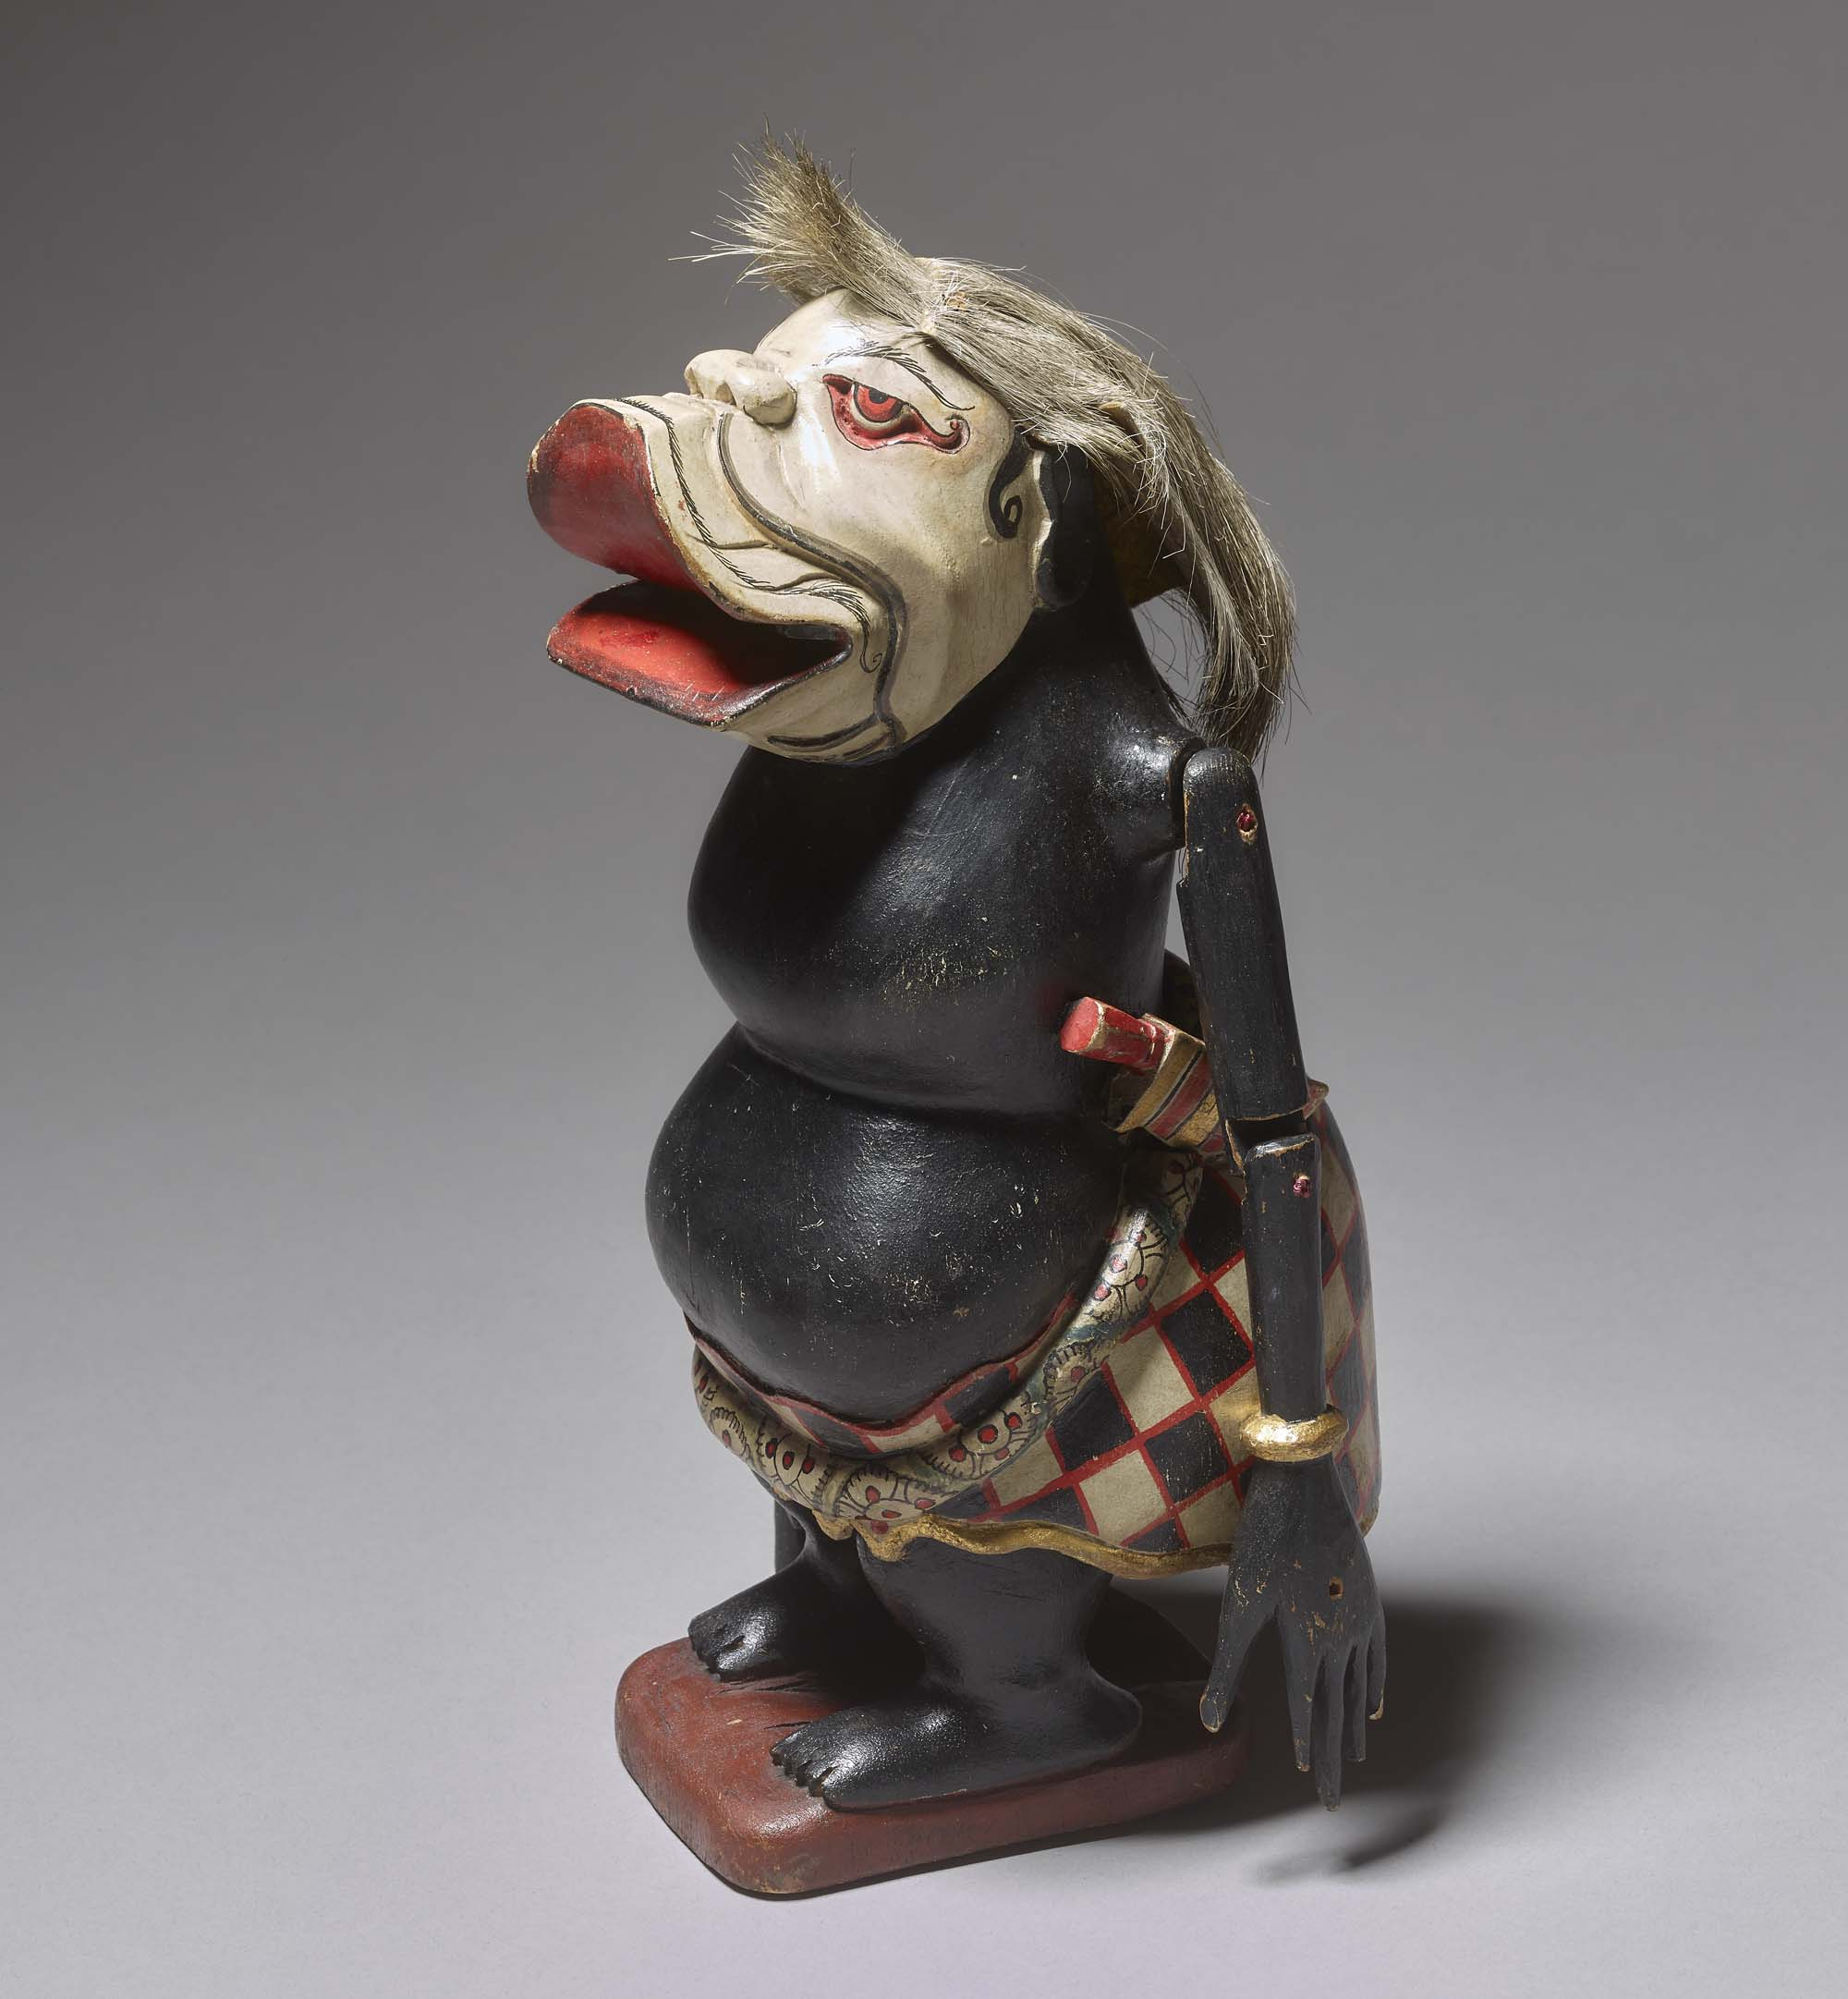 a puppet figure with a white pig like face, short black body and swollen stomach